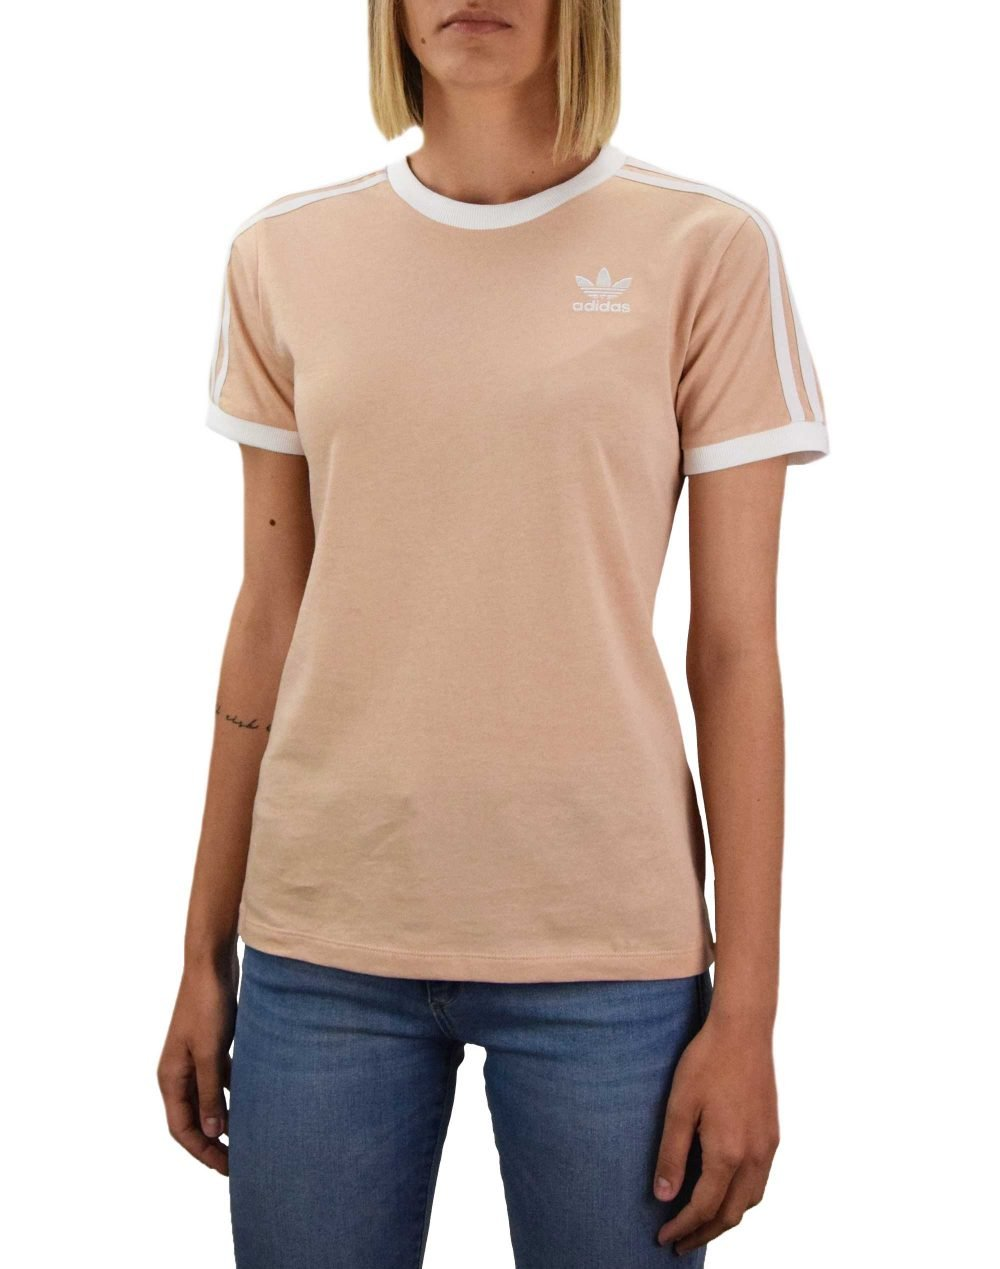 Adidas 3 Stripes Tee (GT4262) Halo Blush